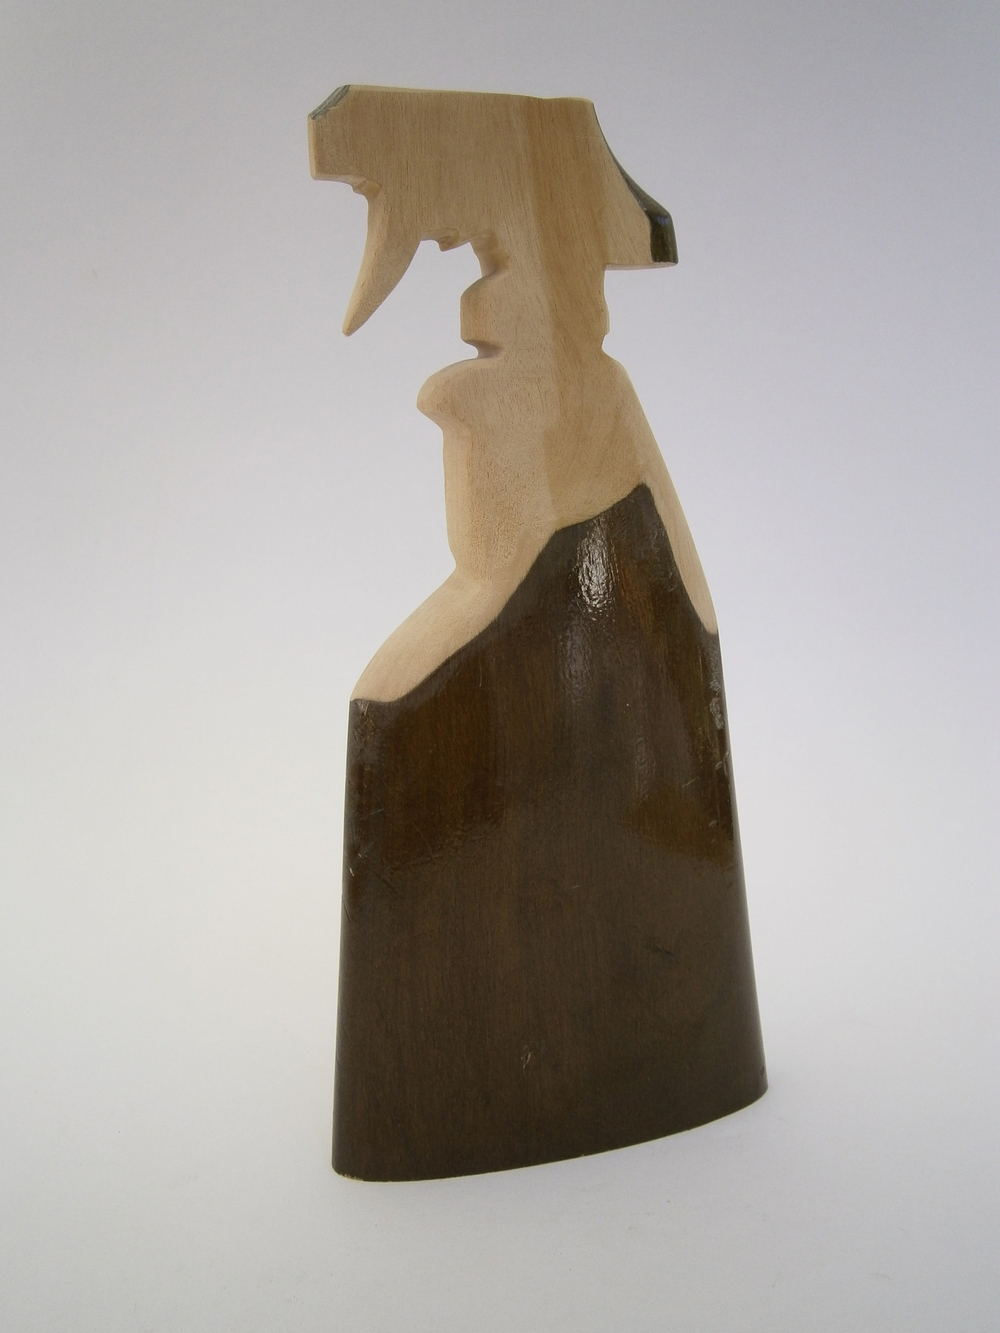 Mould Killer, 2014 Wooden Gun Butt 26 x 12 x 4 cm